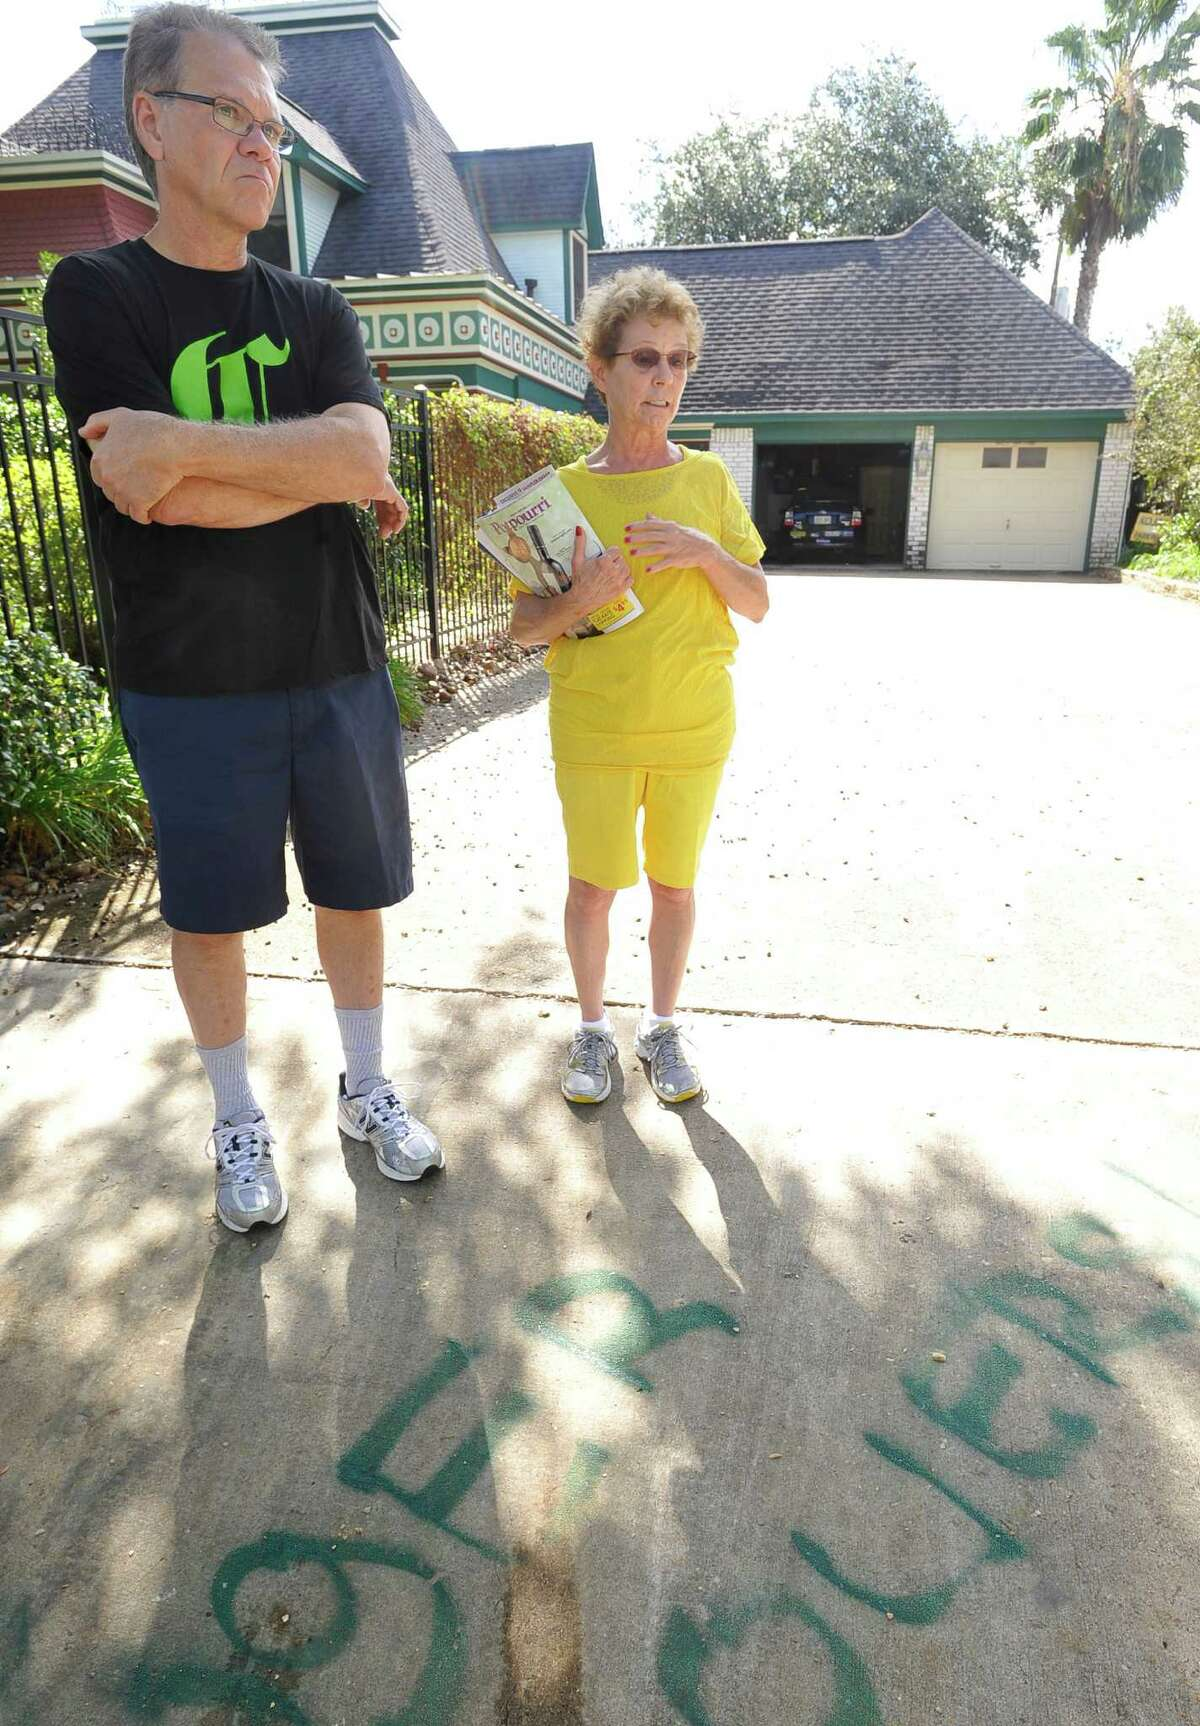 John Stafford, left, and his wife Suzanne discovered racial slurs spray painted on their driveway Saturday morning and one on their Obama/Biden sign that was at the end of the driveway. A Nick Lampson sign had been semi-defaced as well on the opposite side. On Monday morning, they were trying to decide how best to clean off the words that were written in green paint. They believe their political affiliation had something to do with it. Dave Ryan/The Enterprise